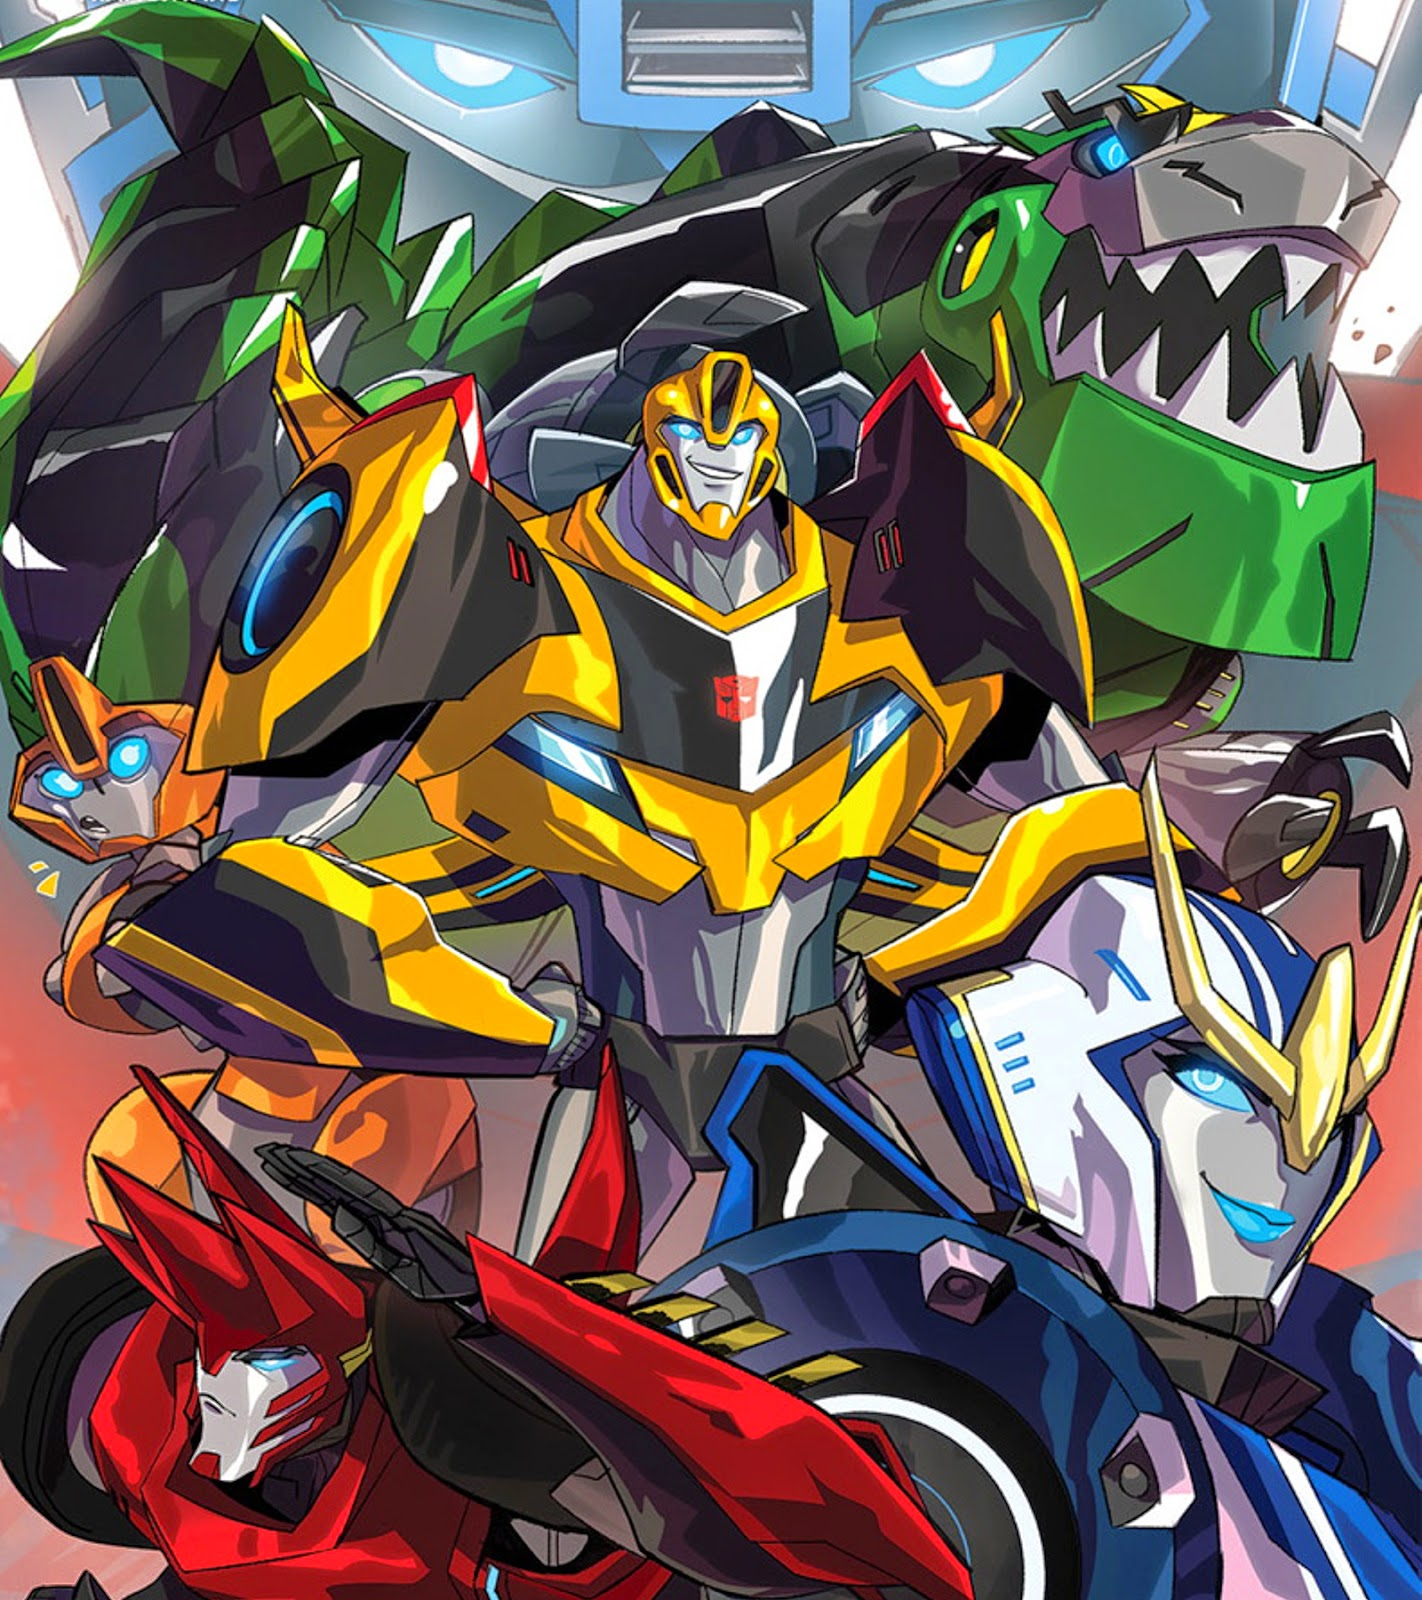 [TRANSFORMERS: ROBOT IN DISGUISE/2015]